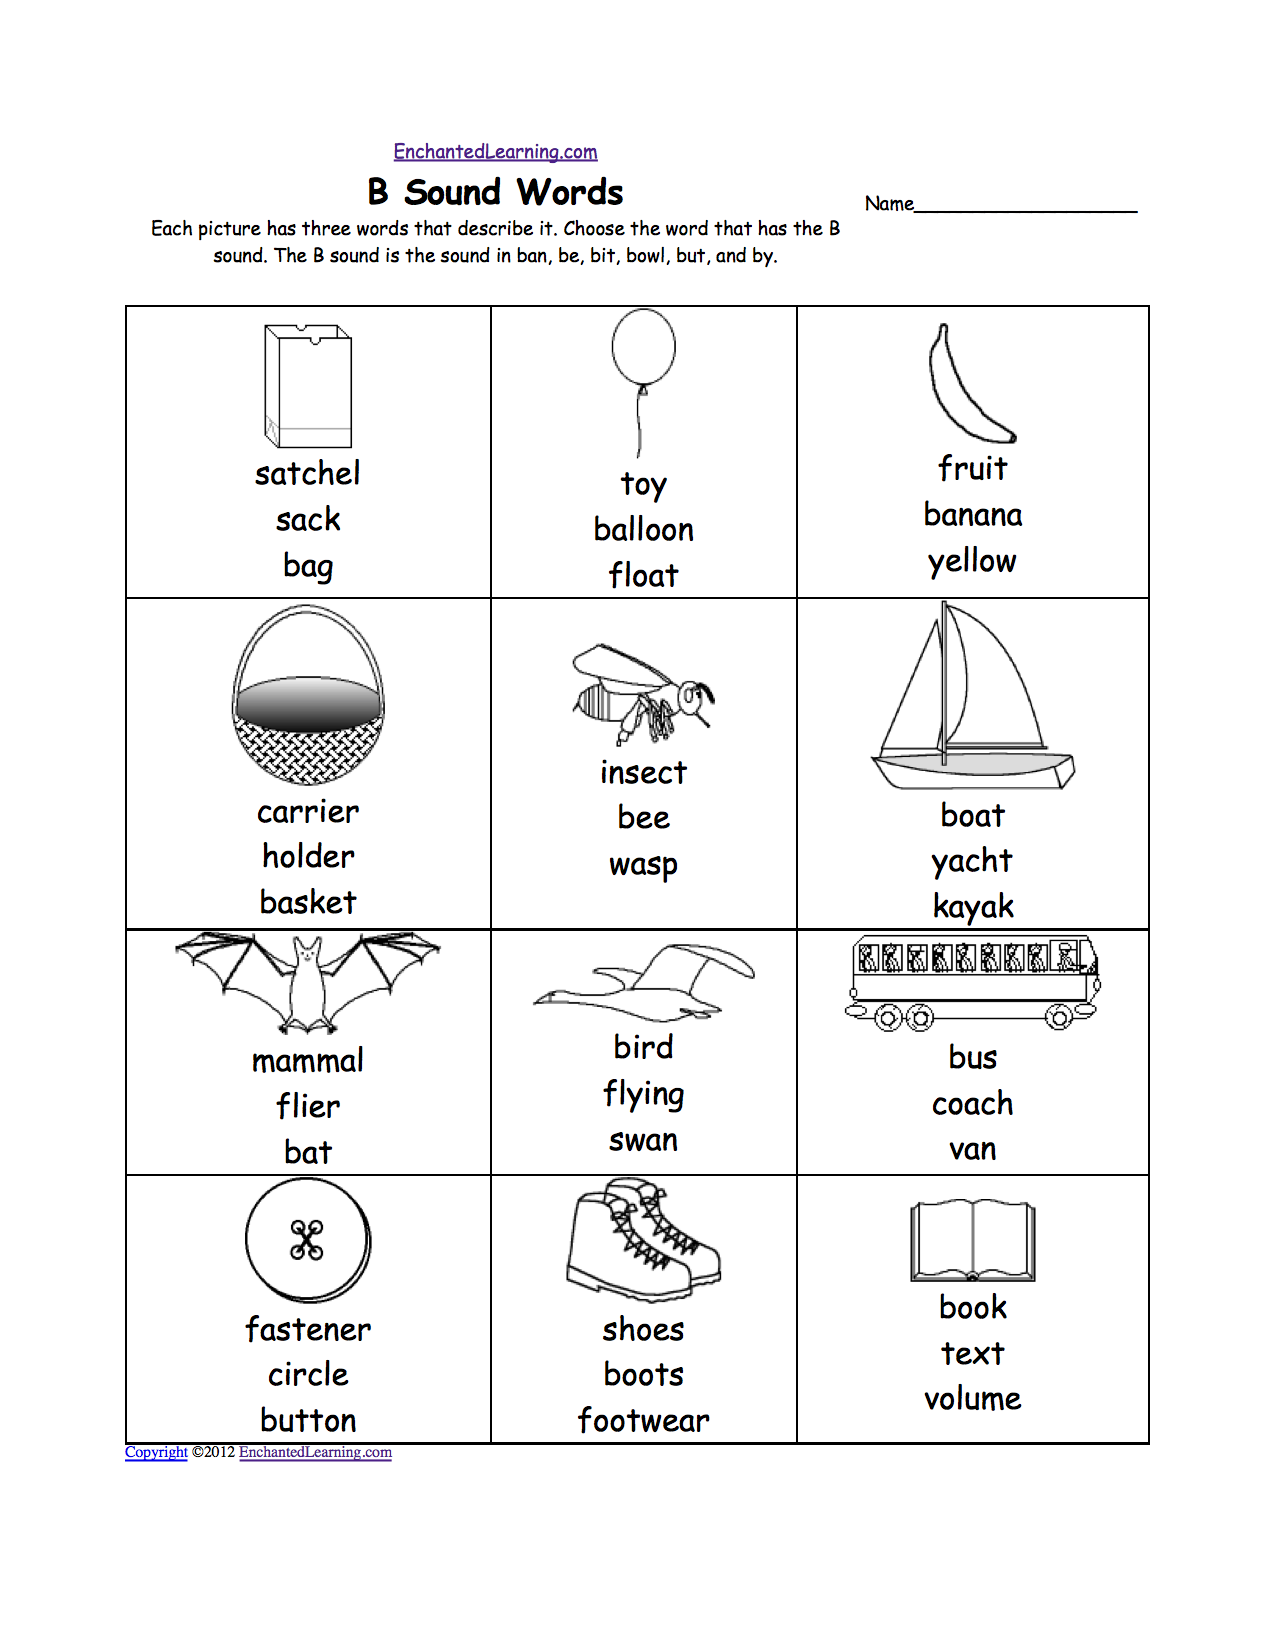 Weirdmailus  Pleasant Phonics Worksheets Multiple Choice Worksheets To Print  With Luxury Quotbquot Sound Phonics Worksheet Multiple Choice Each Picture Has Three Words That Describe It Choose The Word That Has A Quotbquot Sound The Quotbquot Sound Is The Sound  With Divine Compound Words Worksheets For Grade  Also Worksheet On Apostrophes In Addition Super Teacher Worksheets Rounding To The Nearest Hundred And Forming Numbers Worksheets As Well As Handling Data Worksheets Additionally Worksheet Of Maths For Class  From Enchantedlearningcom With Weirdmailus  Luxury Phonics Worksheets Multiple Choice Worksheets To Print  With Divine Quotbquot Sound Phonics Worksheet Multiple Choice Each Picture Has Three Words That Describe It Choose The Word That Has A Quotbquot Sound The Quotbquot Sound Is The Sound  And Pleasant Compound Words Worksheets For Grade  Also Worksheet On Apostrophes In Addition Super Teacher Worksheets Rounding To The Nearest Hundred From Enchantedlearningcom